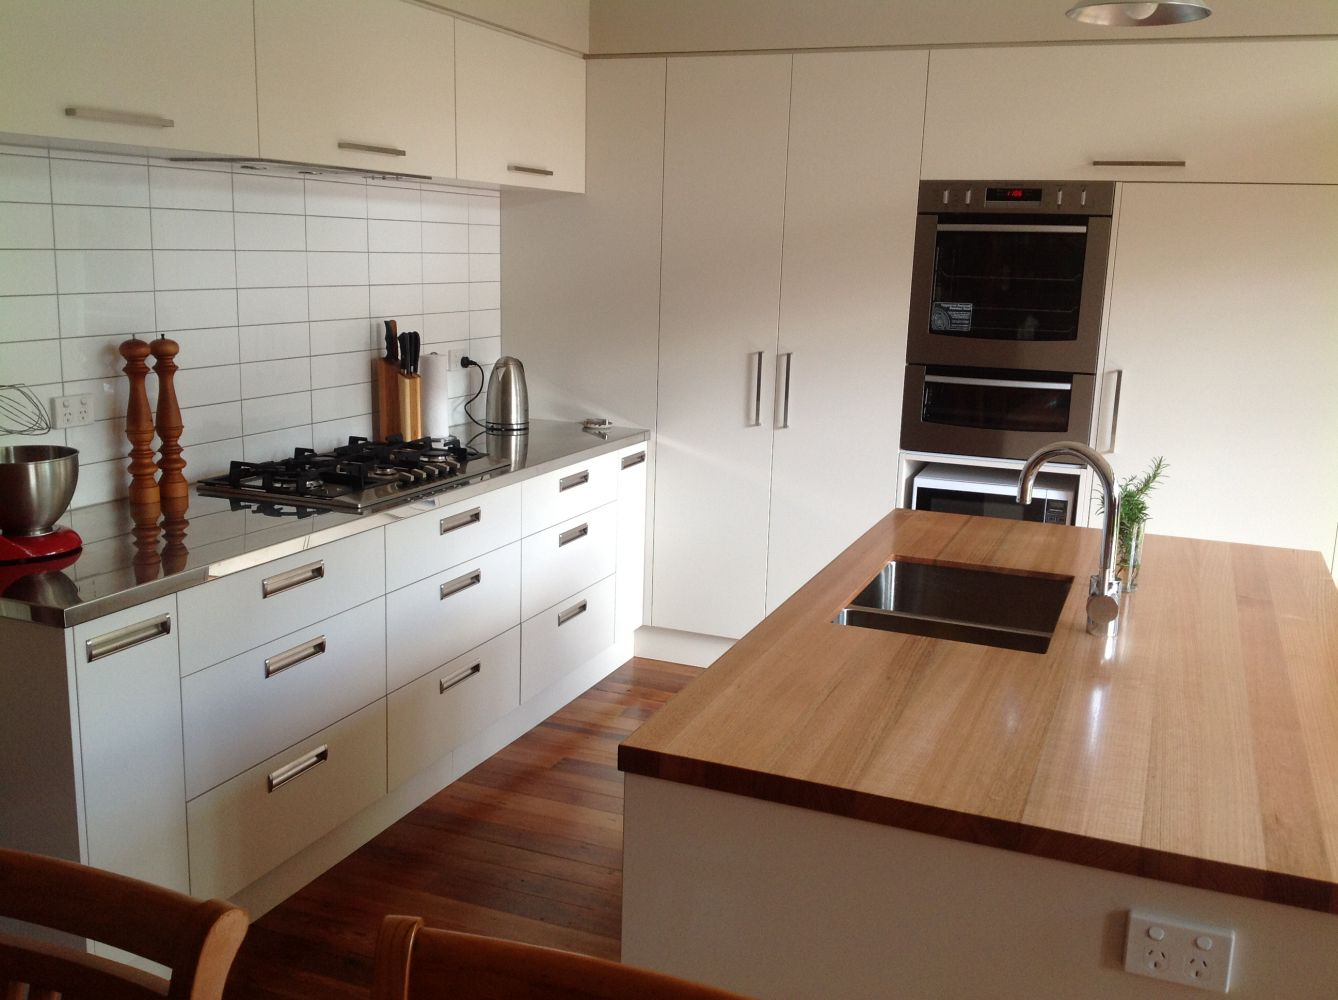 kitchen cabinets dunedin taylor made joinery